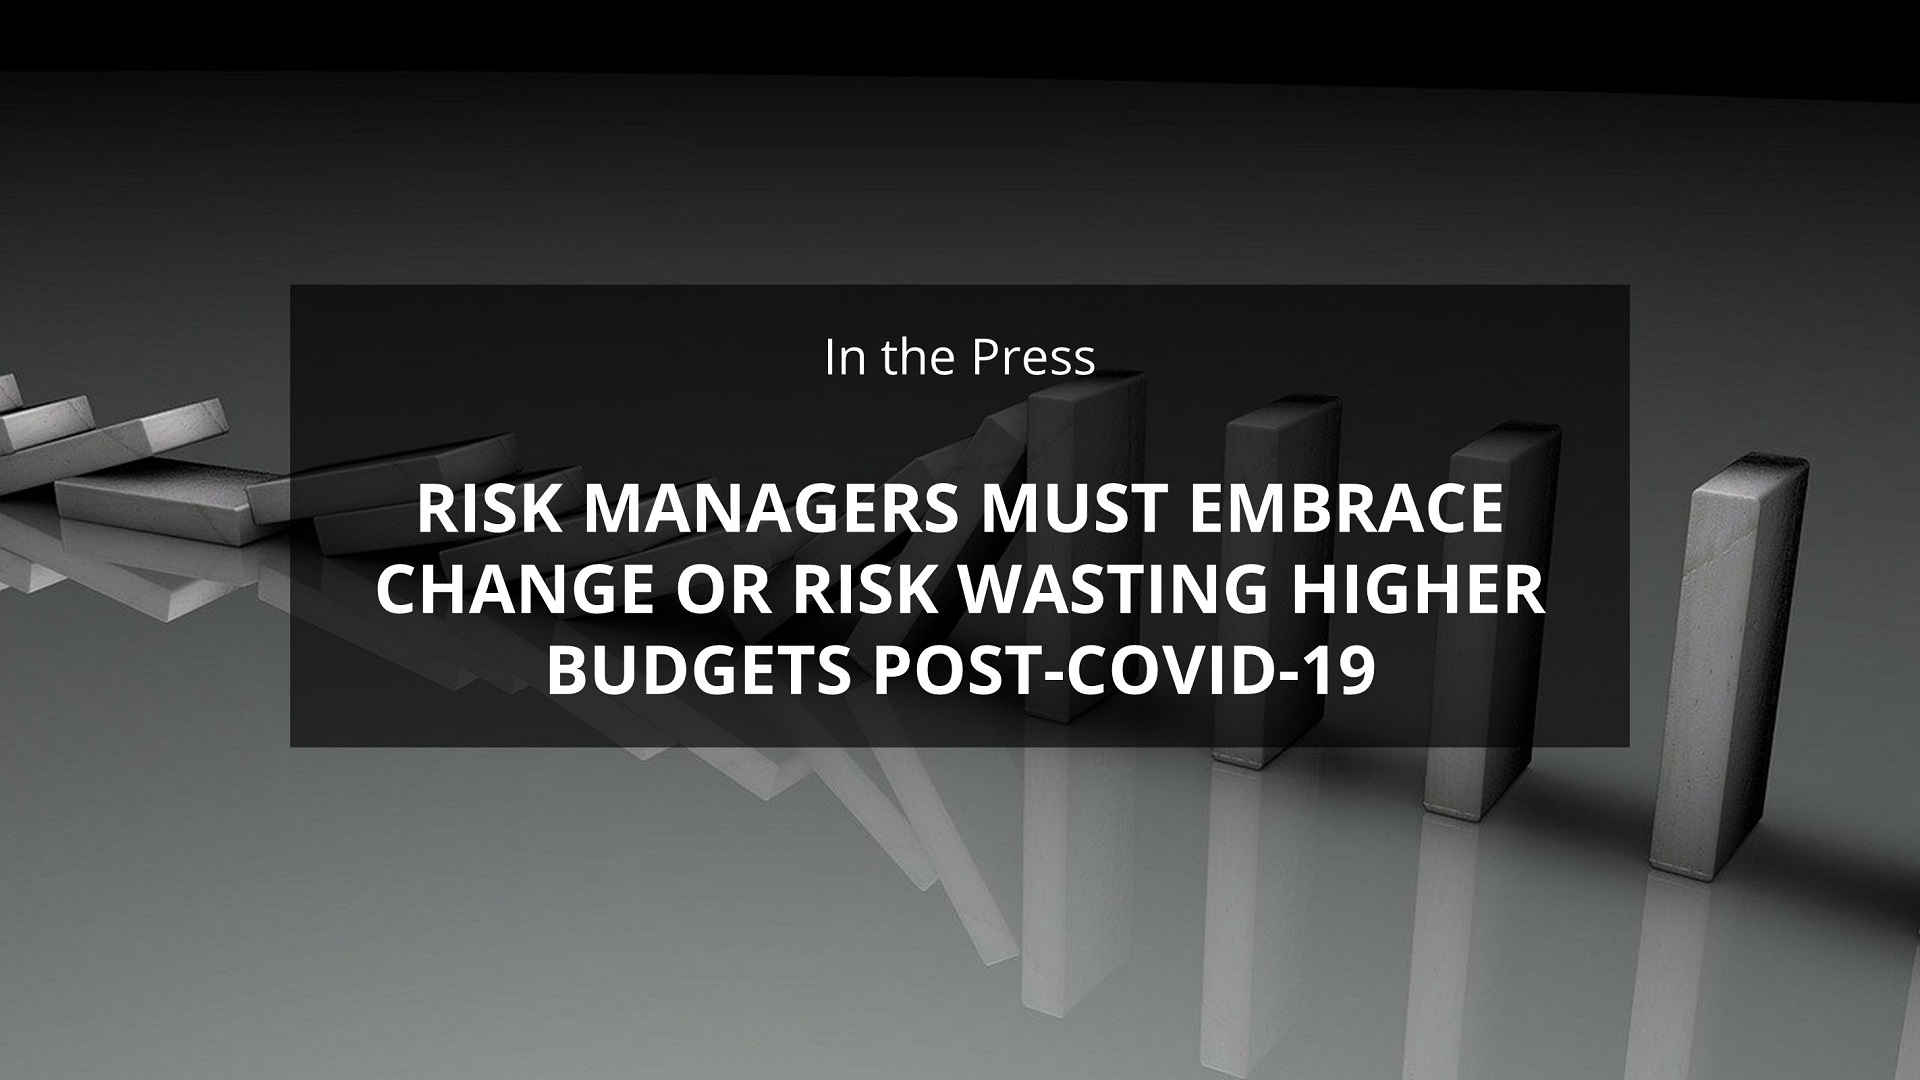 Investing Post Covid TPRM Budgets